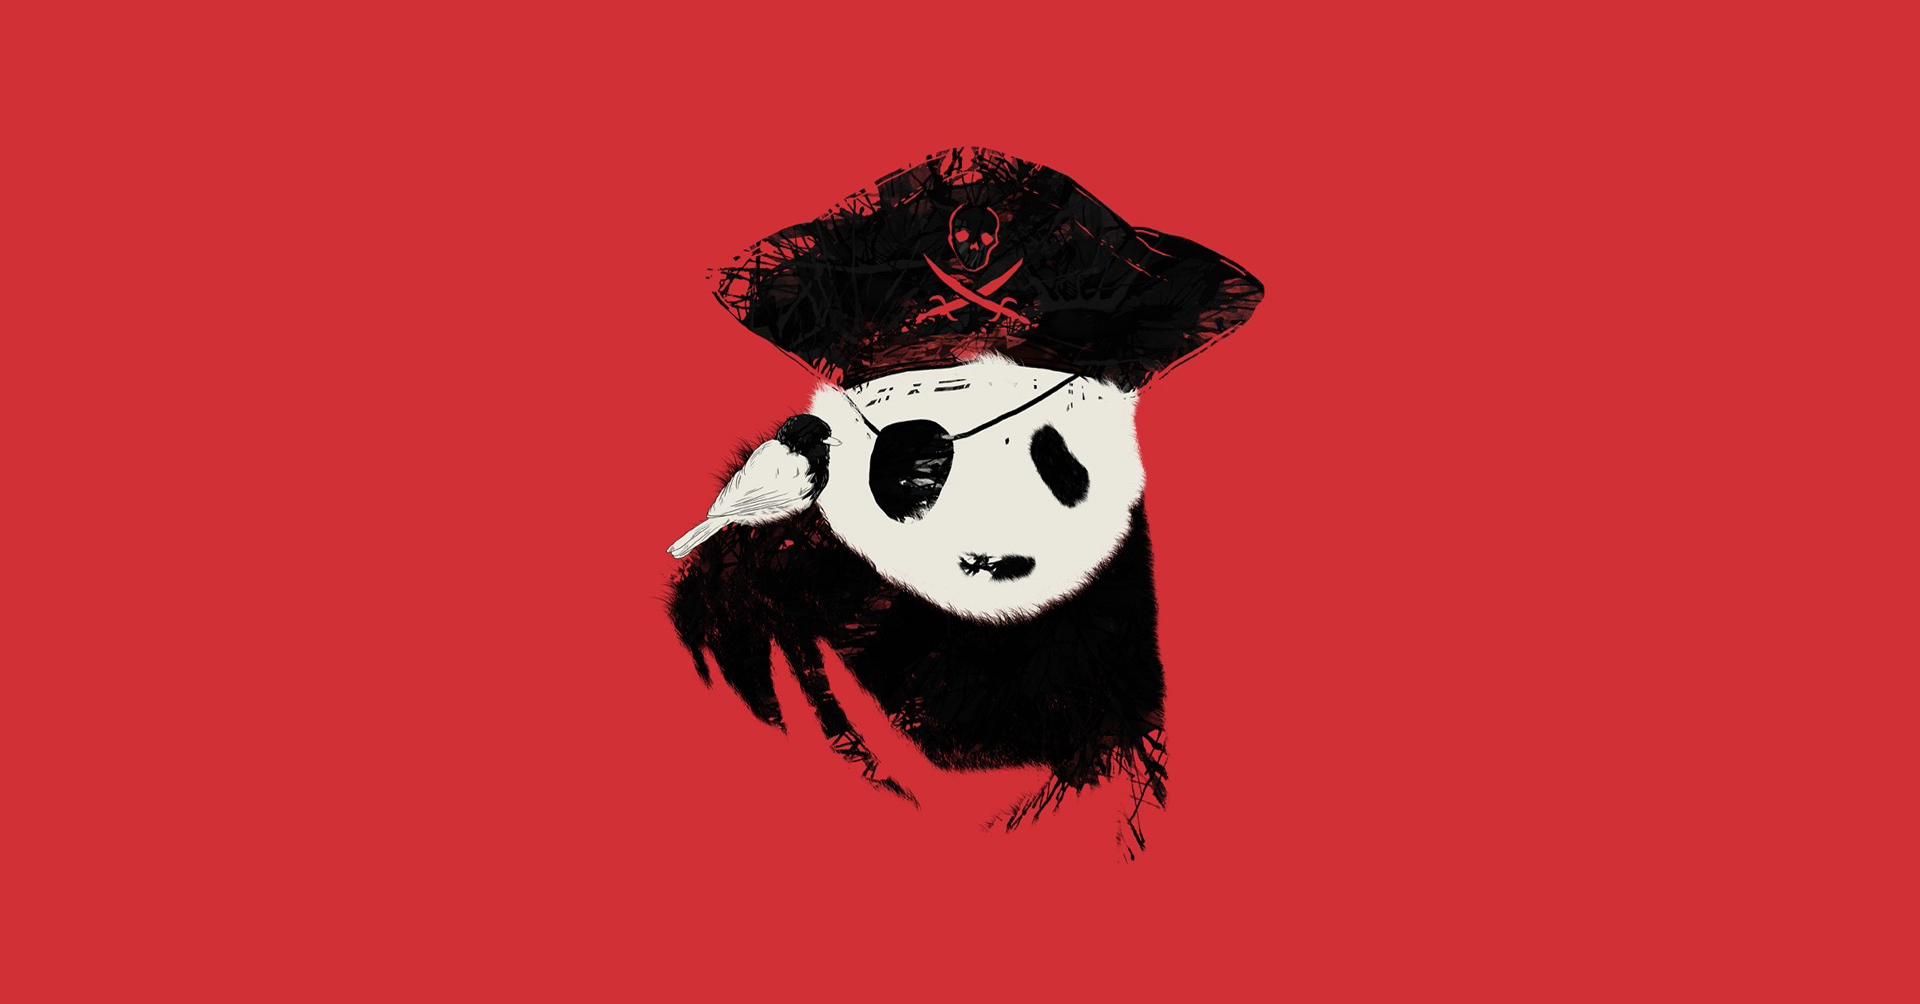 Wallpaper Dope Girls Panda Bears Solid Simplistic Simple Abstract Pirates